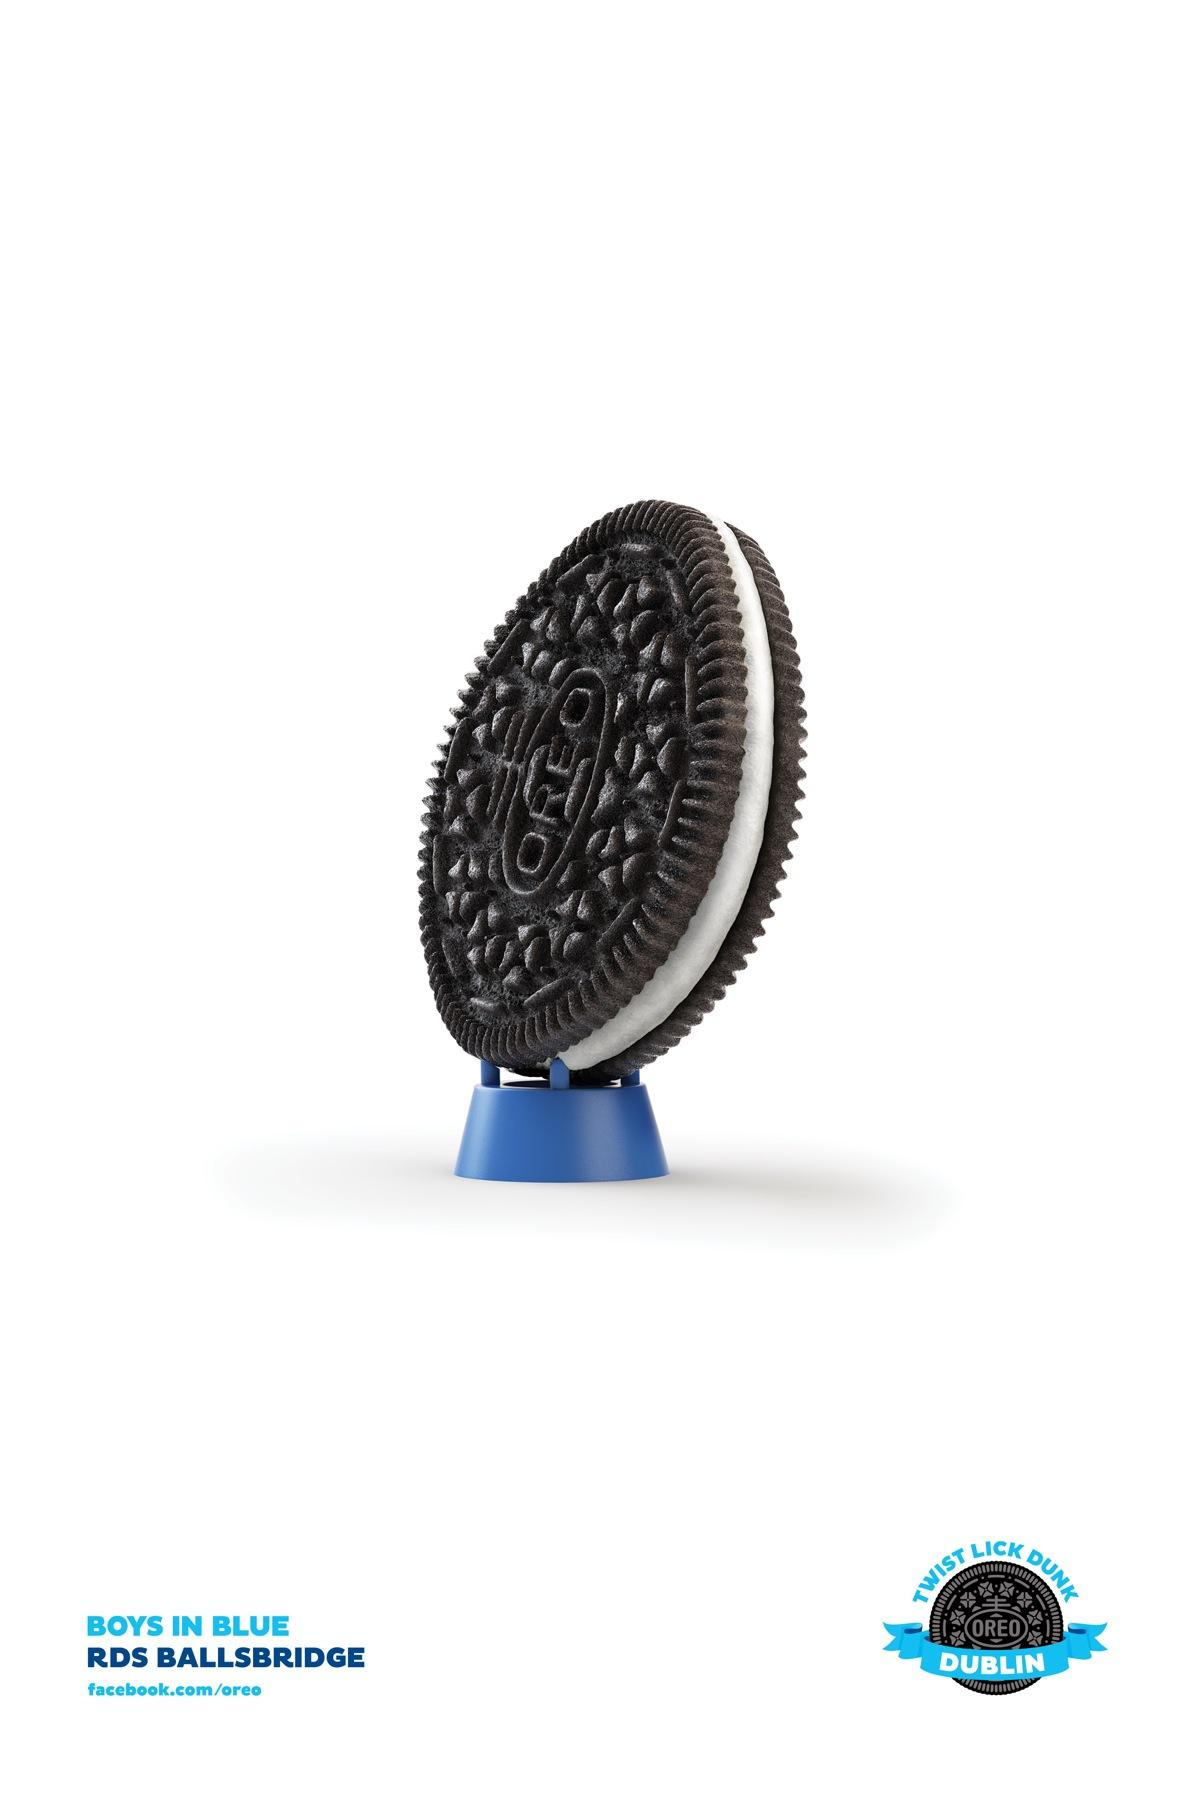 Oreo Outdoor Ad -  Dublin Twist, 13